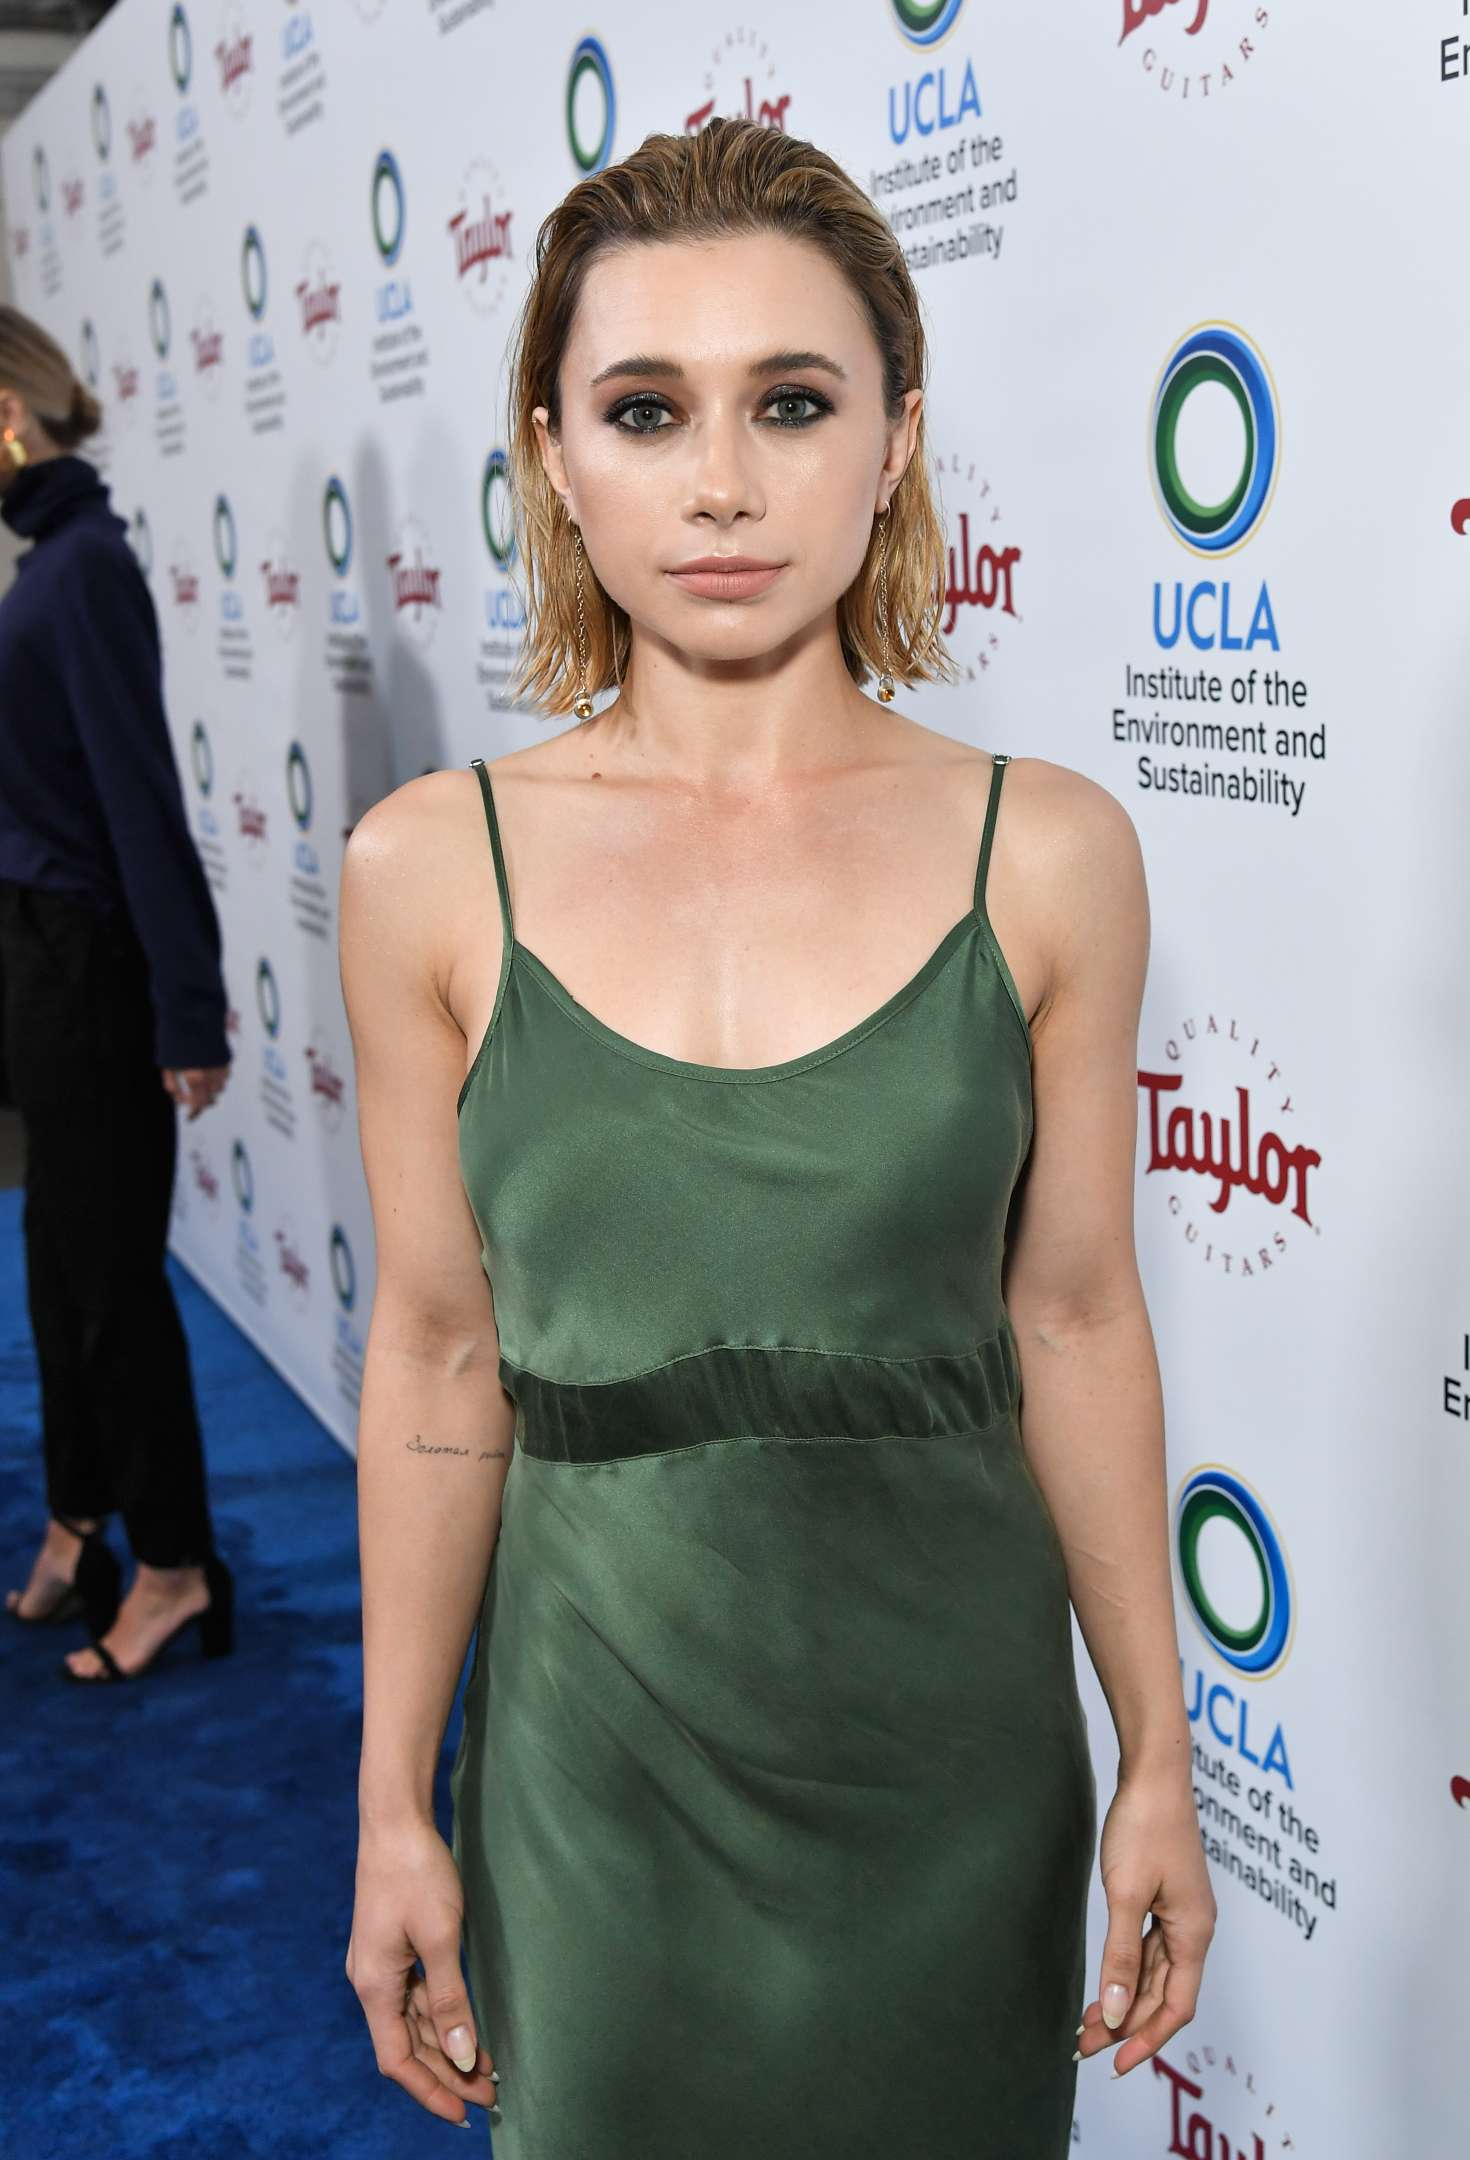 Olesya Rulin - 2018 UCLA's Institute of the Environment and Sustainability Gala in LA